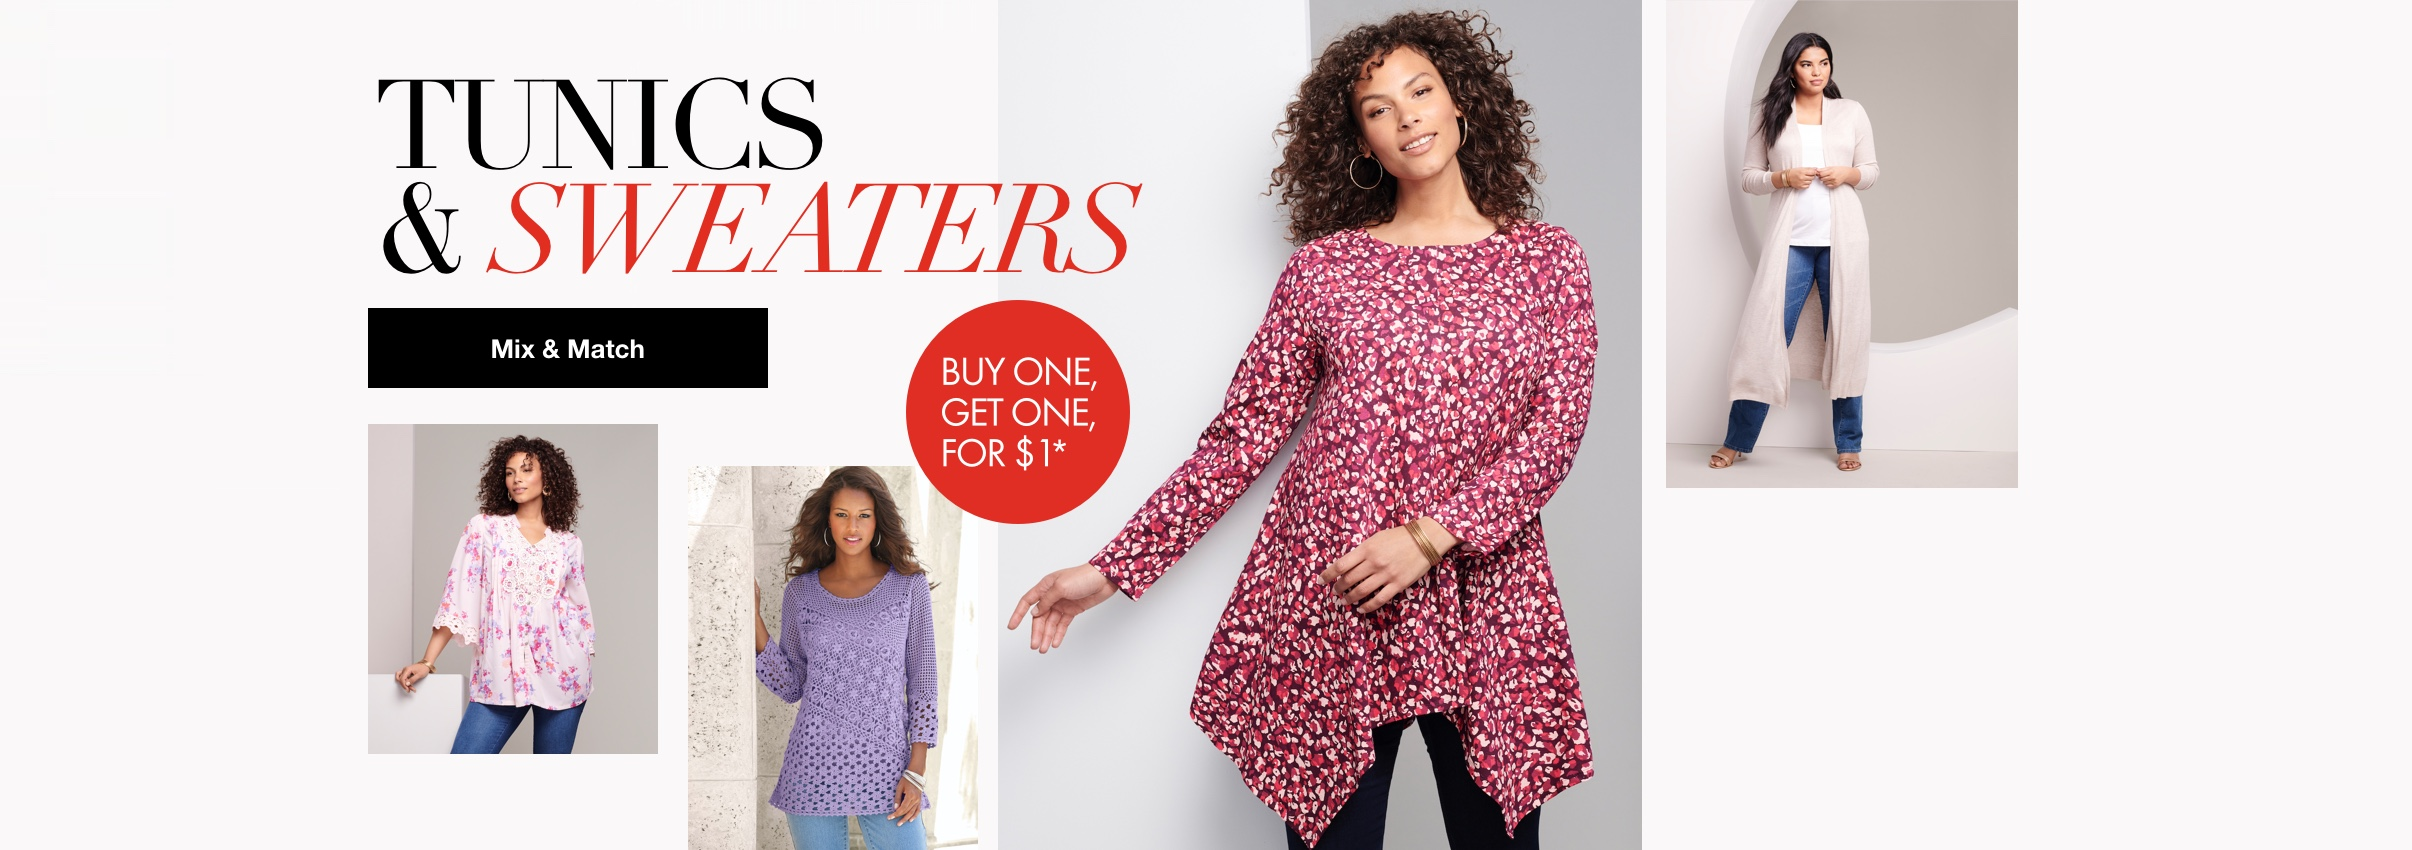 Tunics & Sweaters Mix & Match - Buy One, Get One for $1*